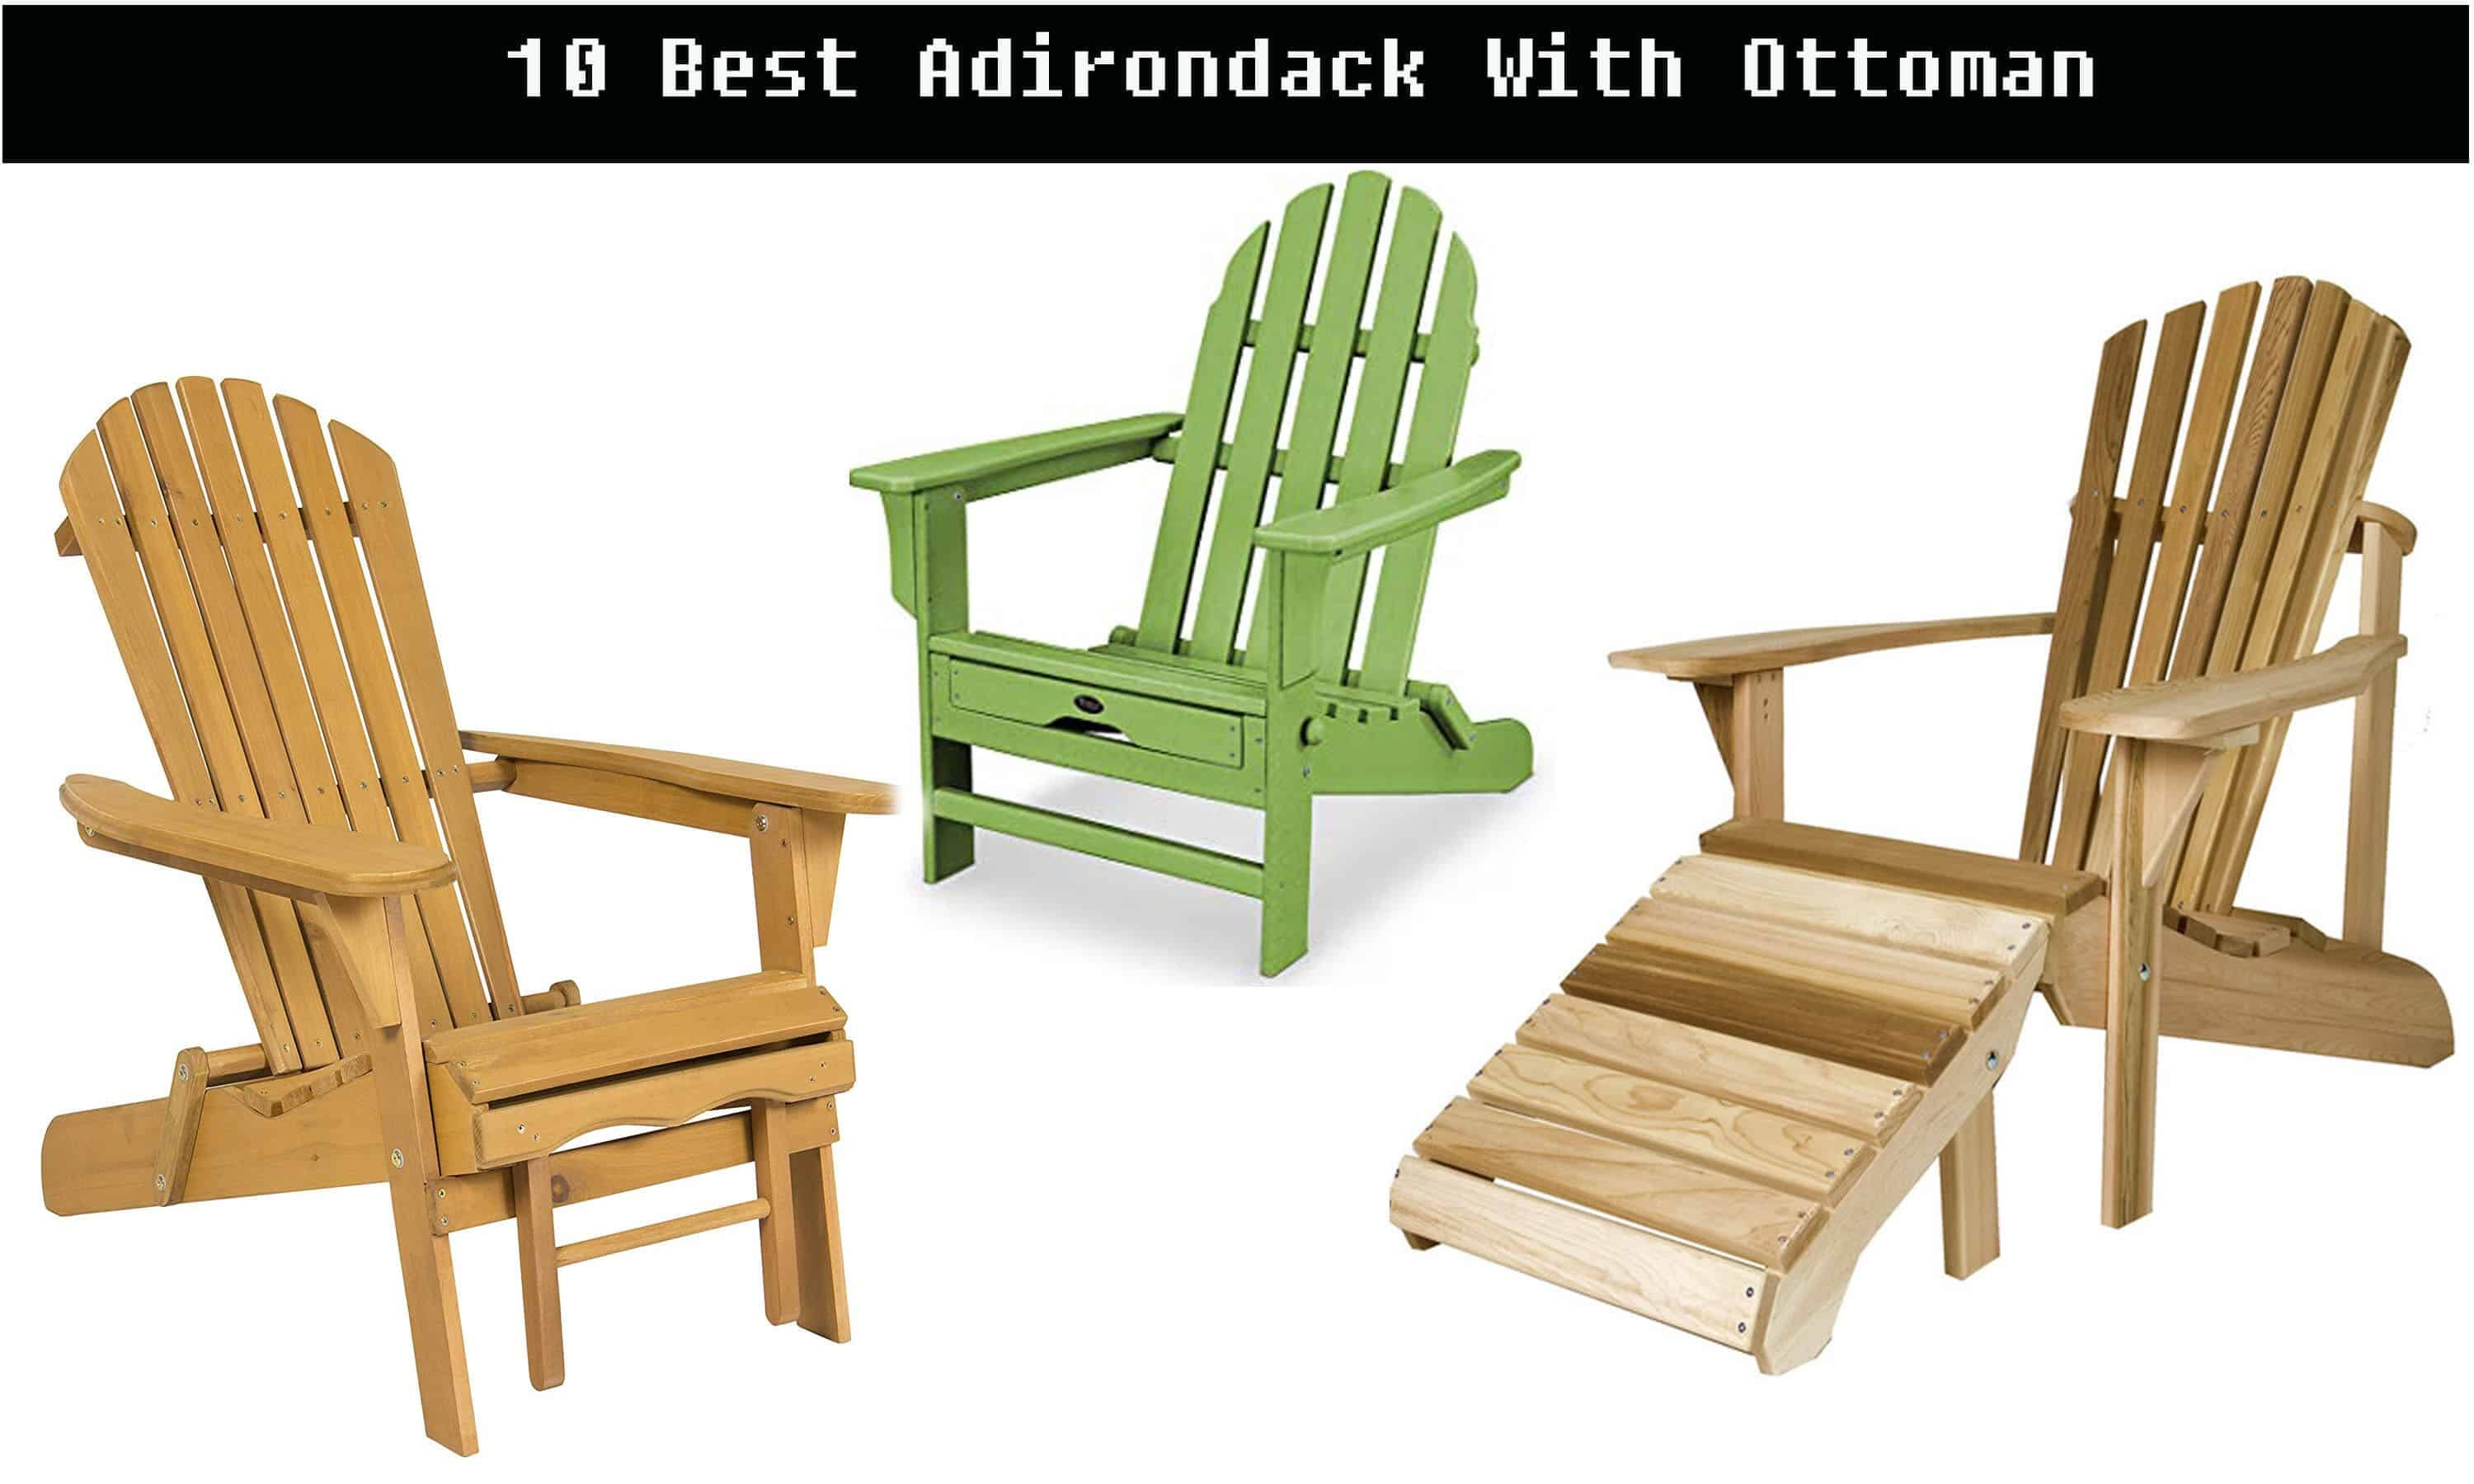 Top 10 Ottoman for Adirondack Chairs (2019)